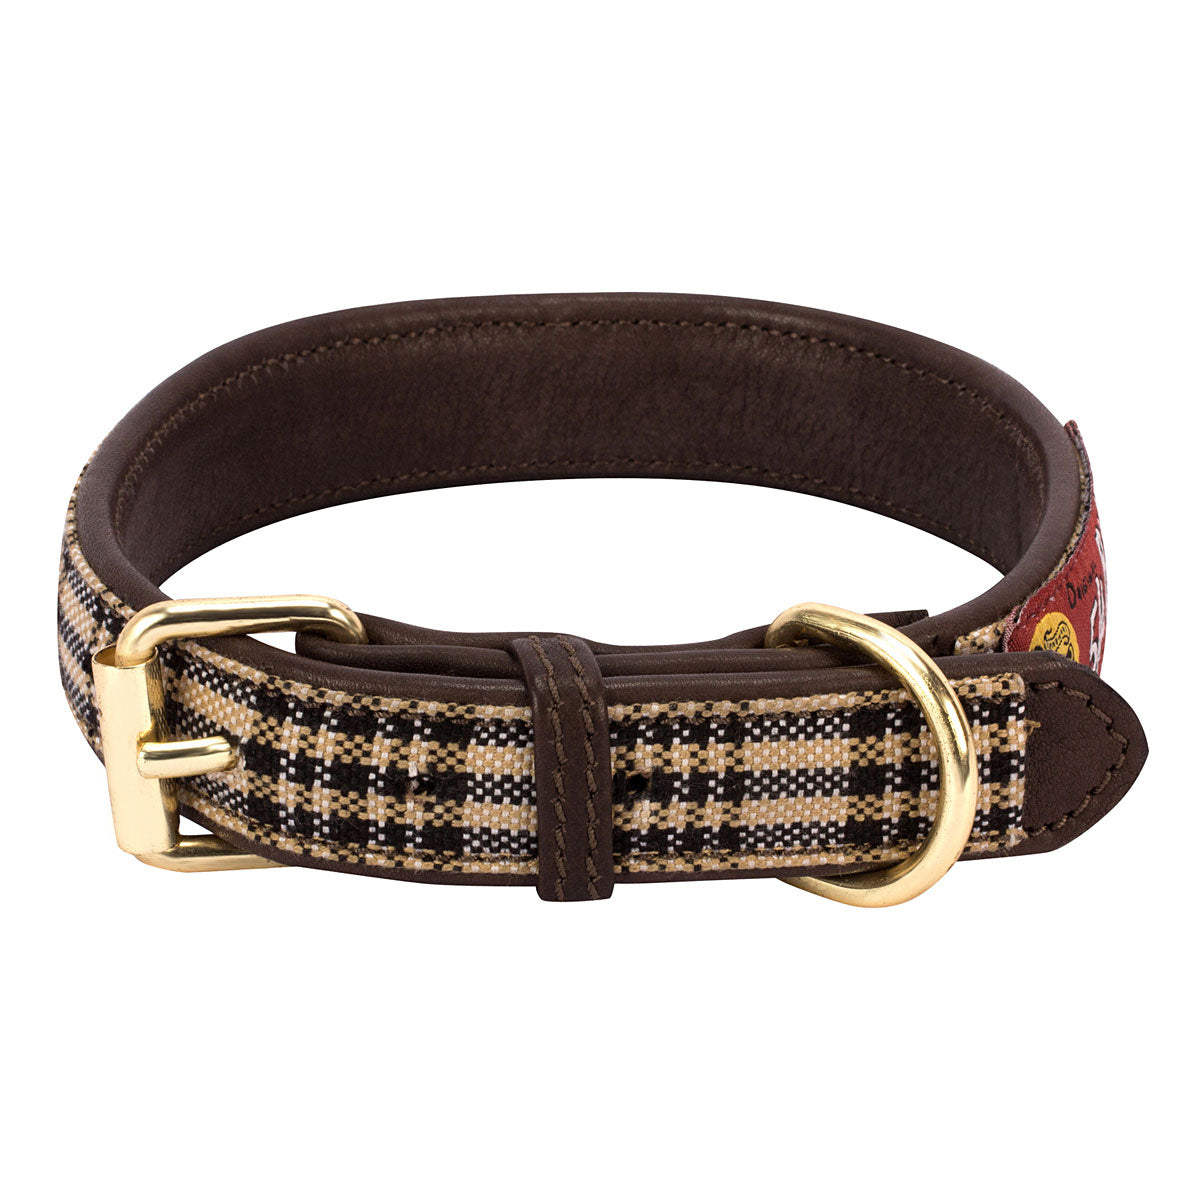 Leather Dog Collar with Plaid Overlay - Baker - Breeches.com